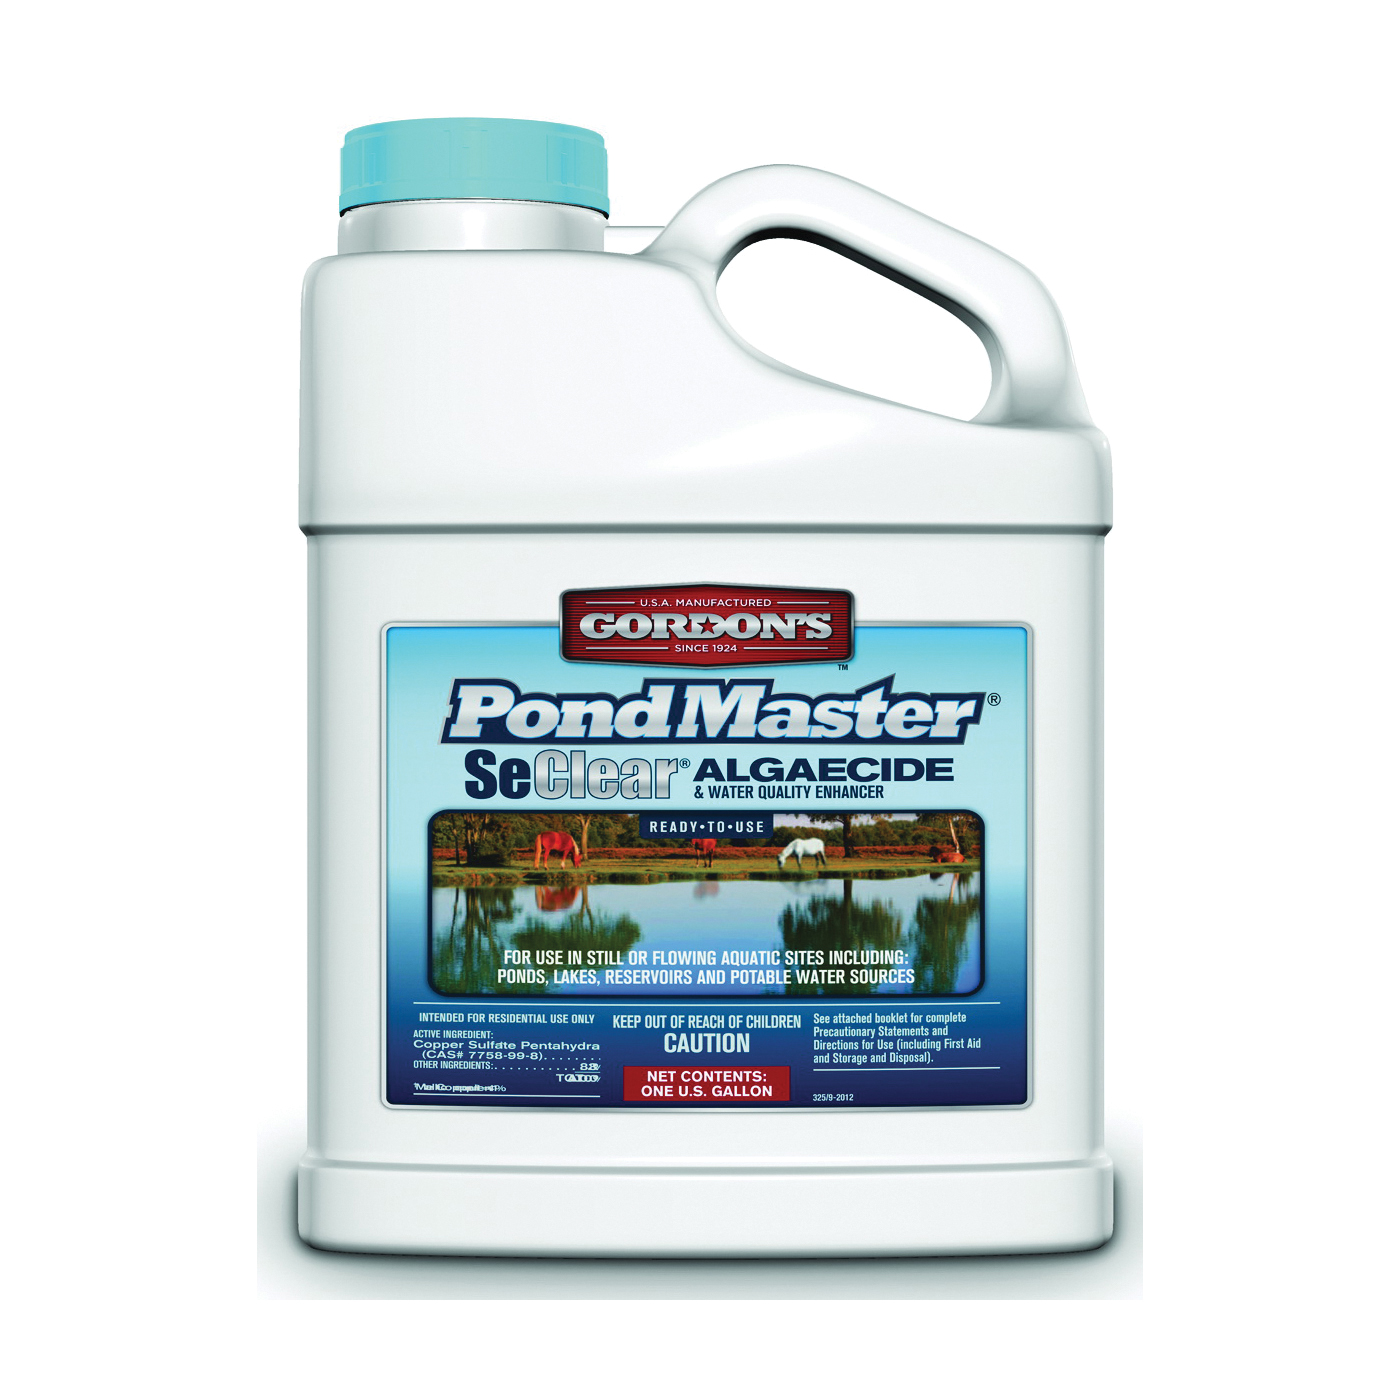 Picture of Gordon's PondMaster 3251072 Algaecide, Liquid, Light Blue, 1 gal Package